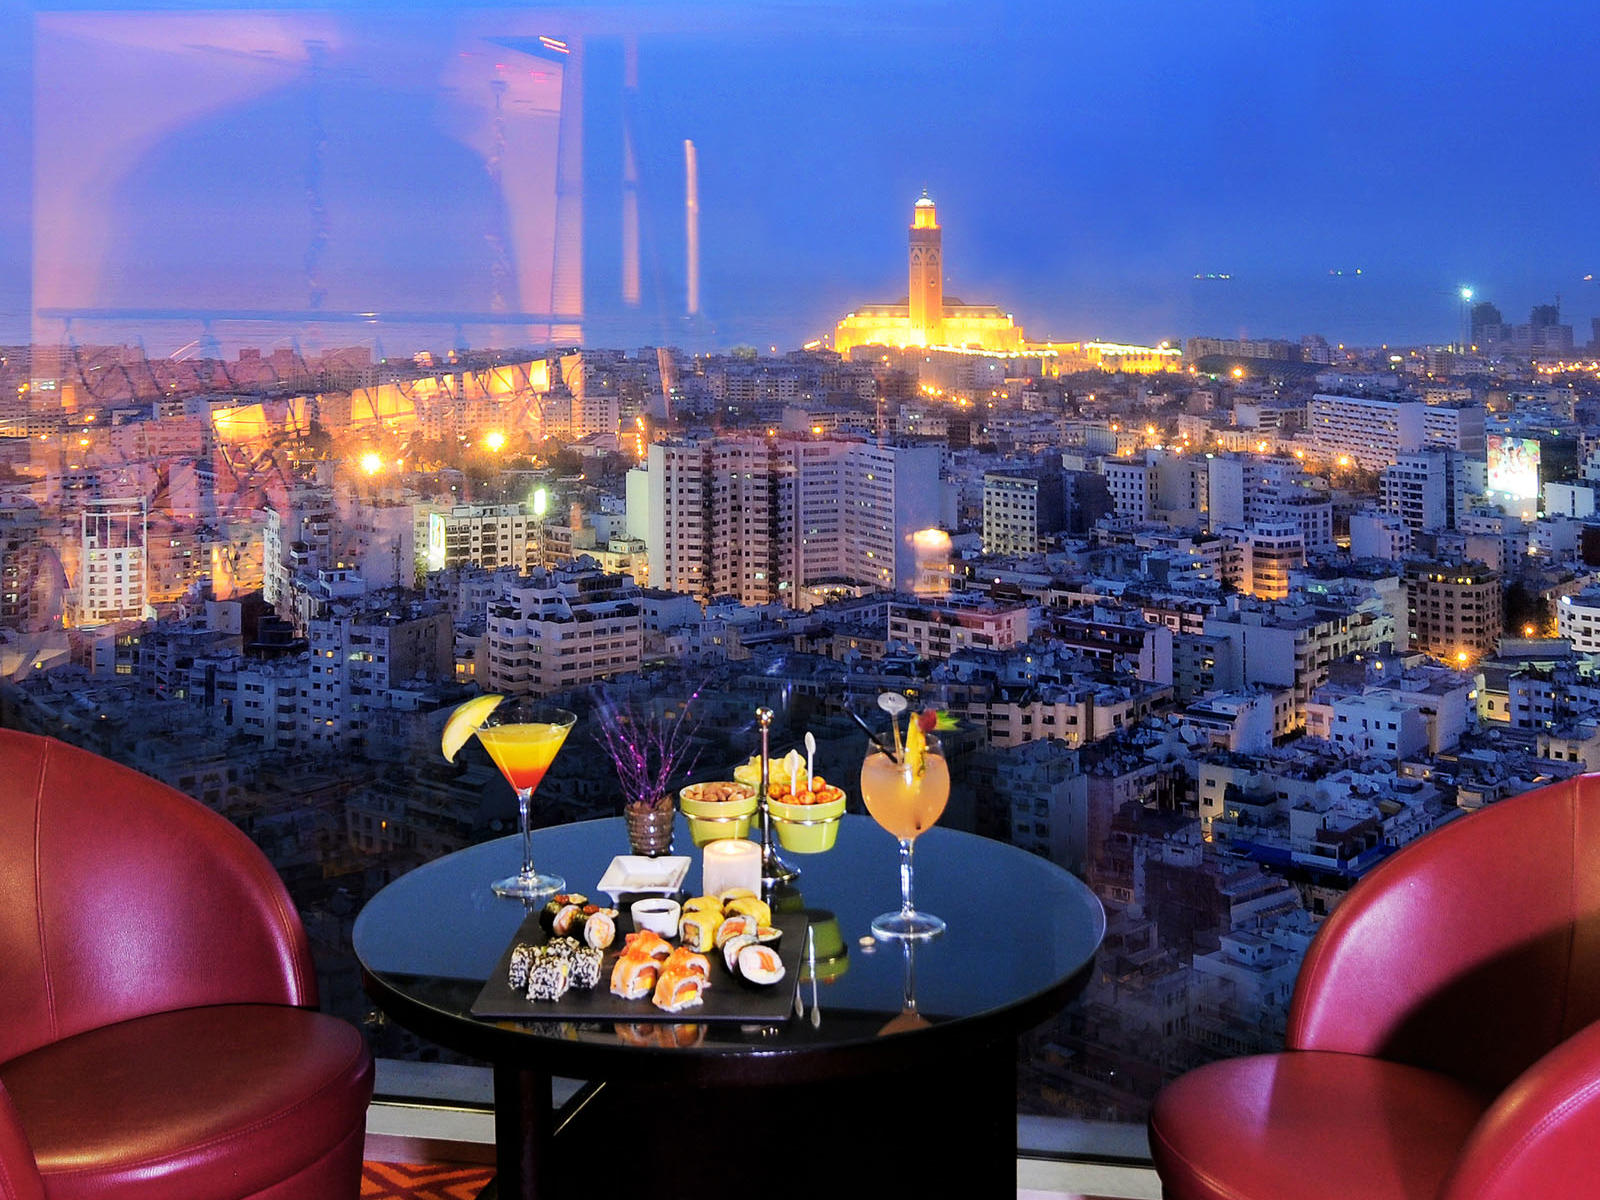 Sky 28 Bar at Kenzi Tower Hotel in Casablanca, Morocco